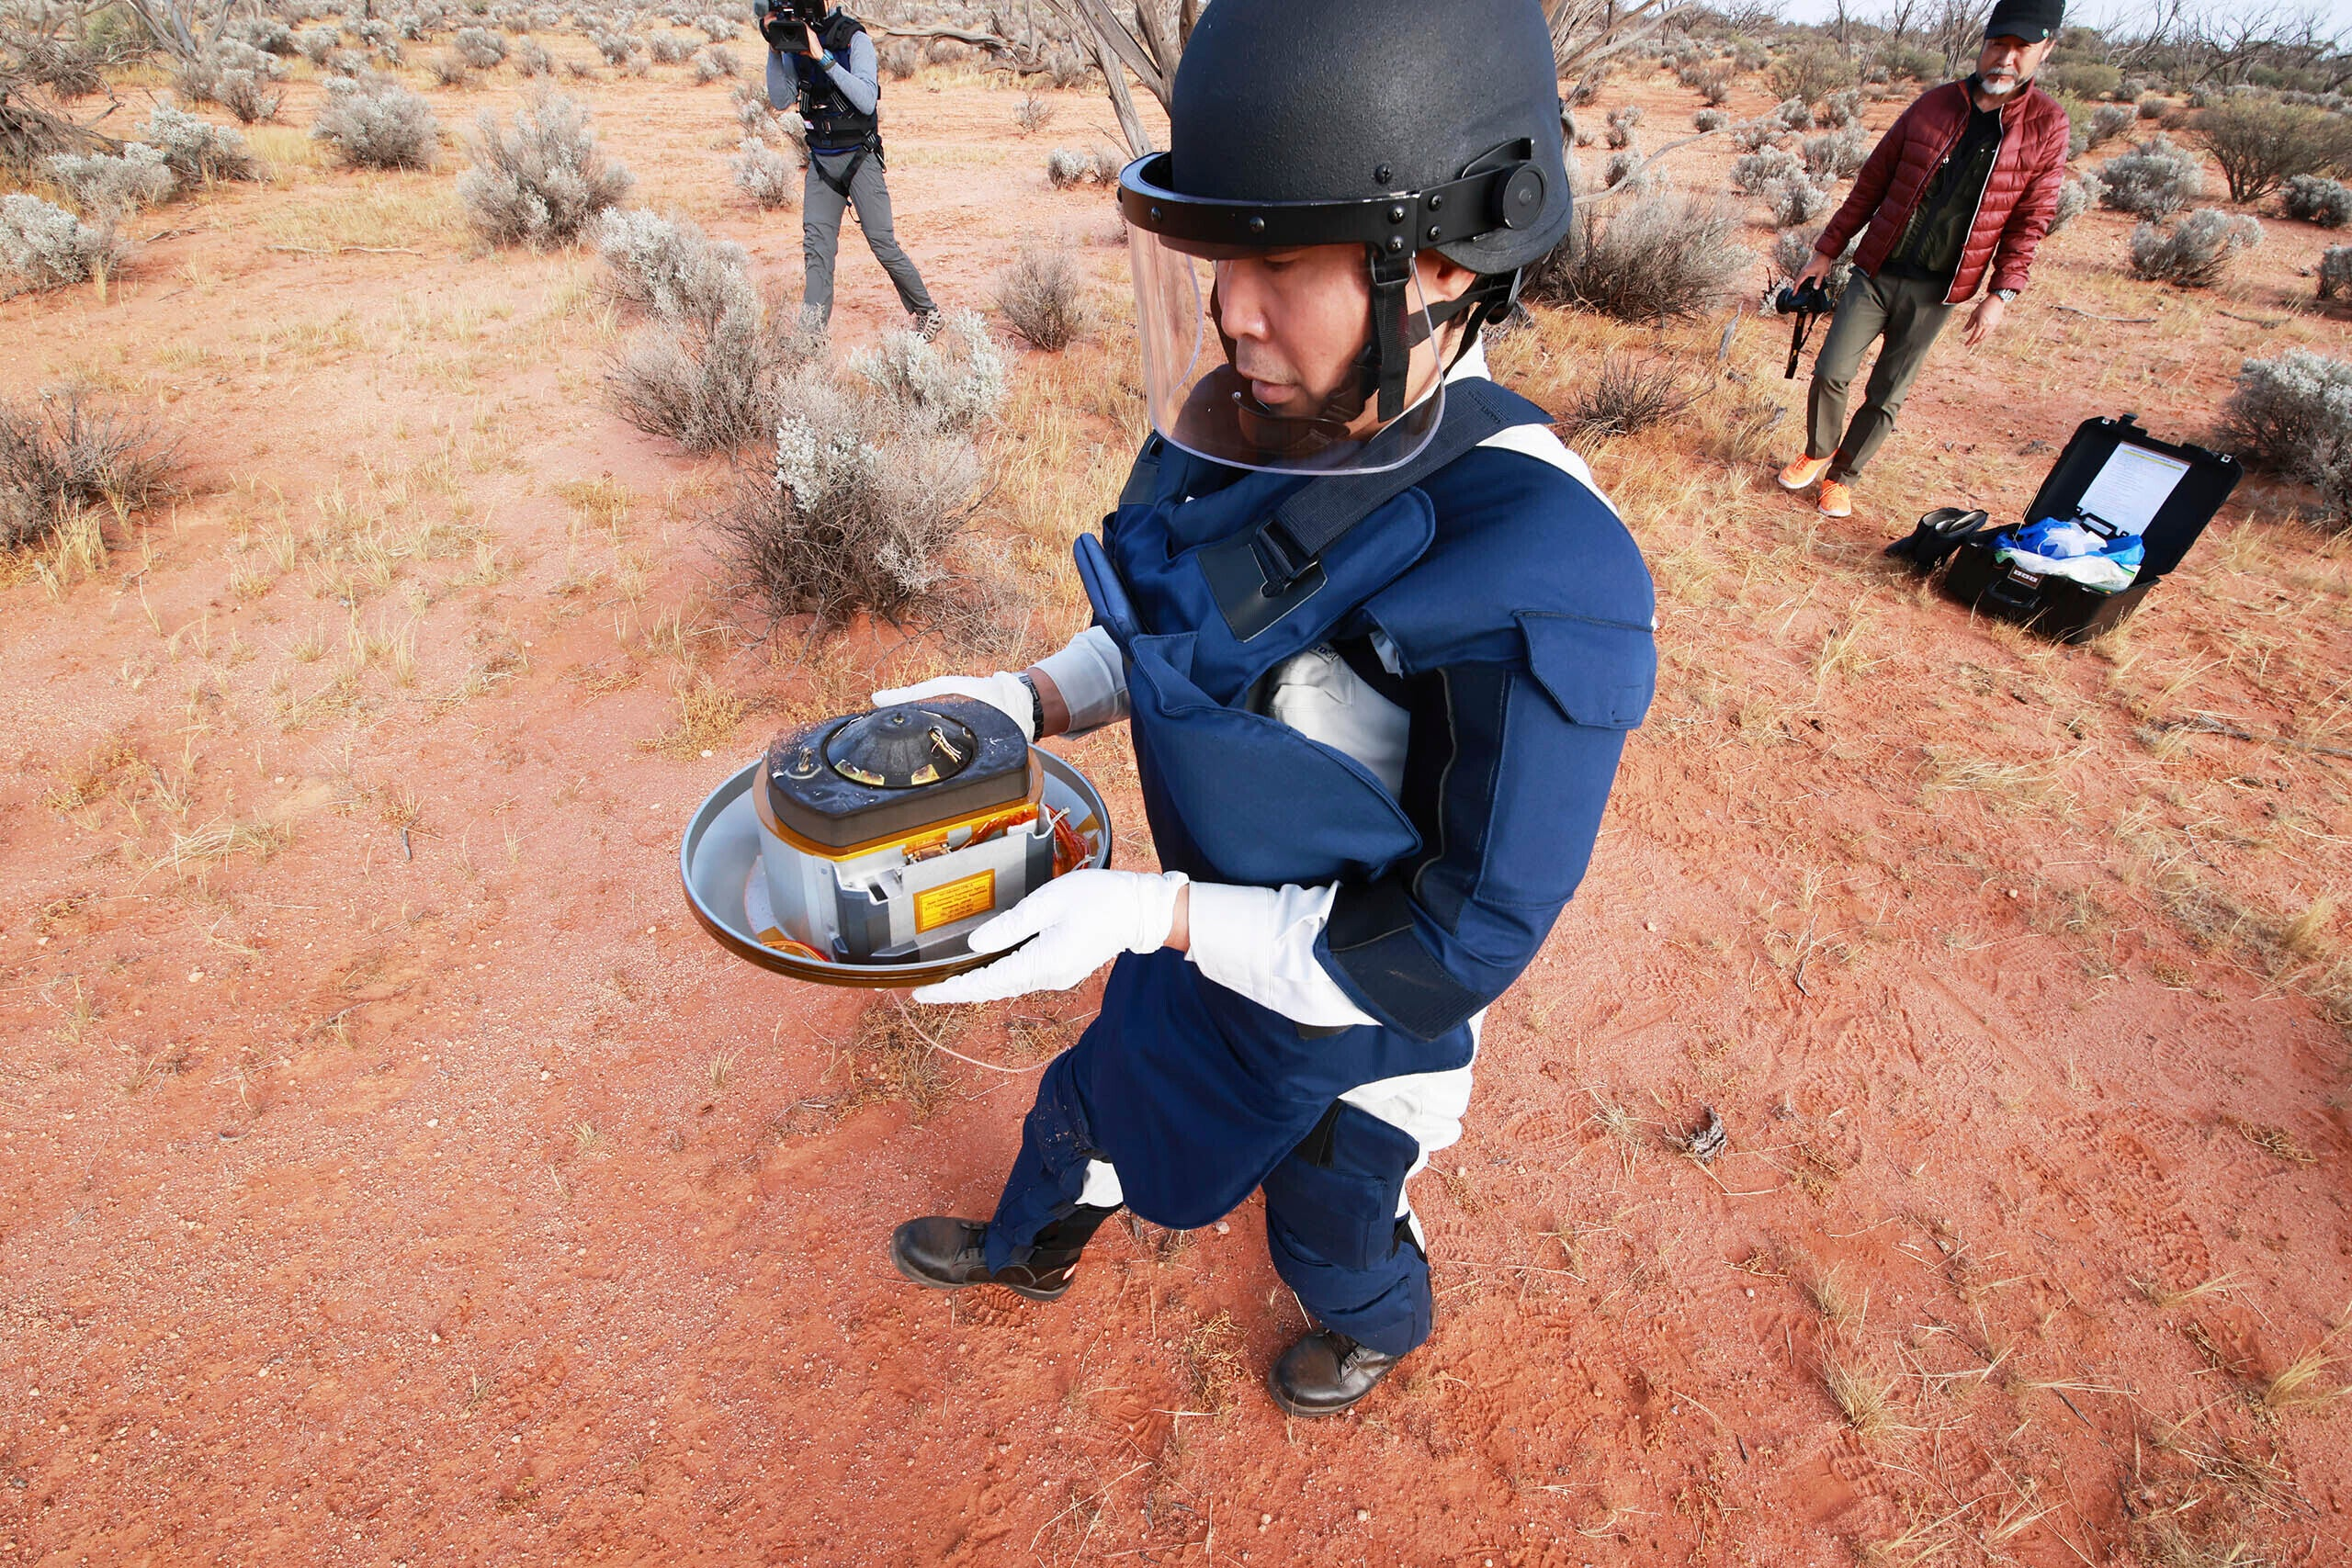 Member of the Hayabusa2 team holds the mission's sample-return capsule